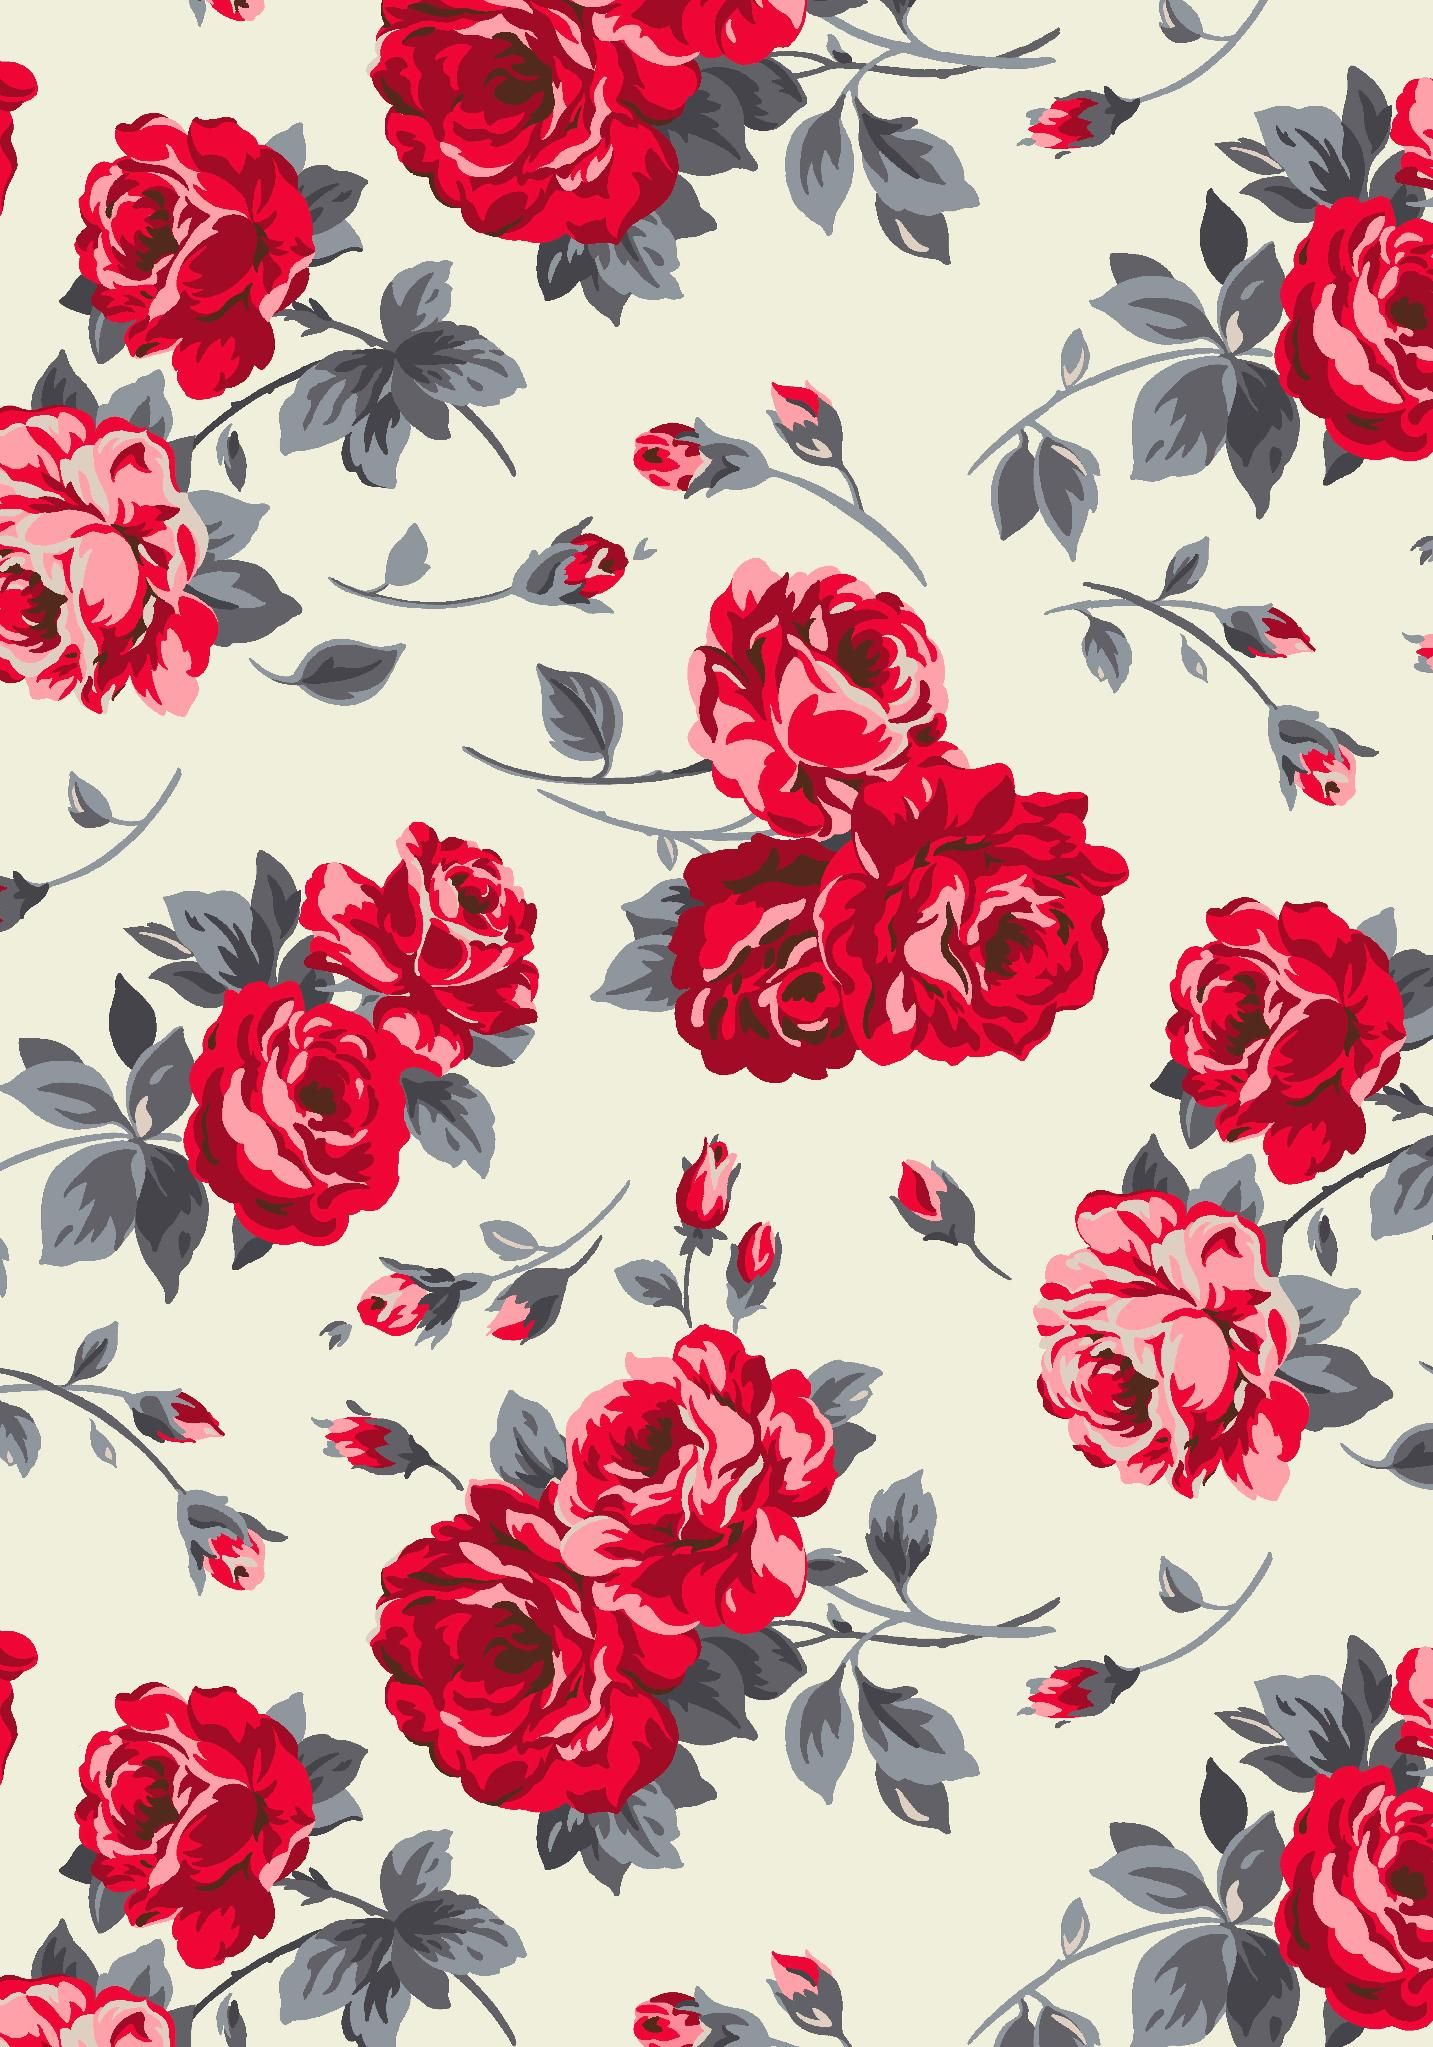 Seamless Cute Vintage Rose Flower Pattern Stock Vector ... |Vintage Floral Rose Pattern